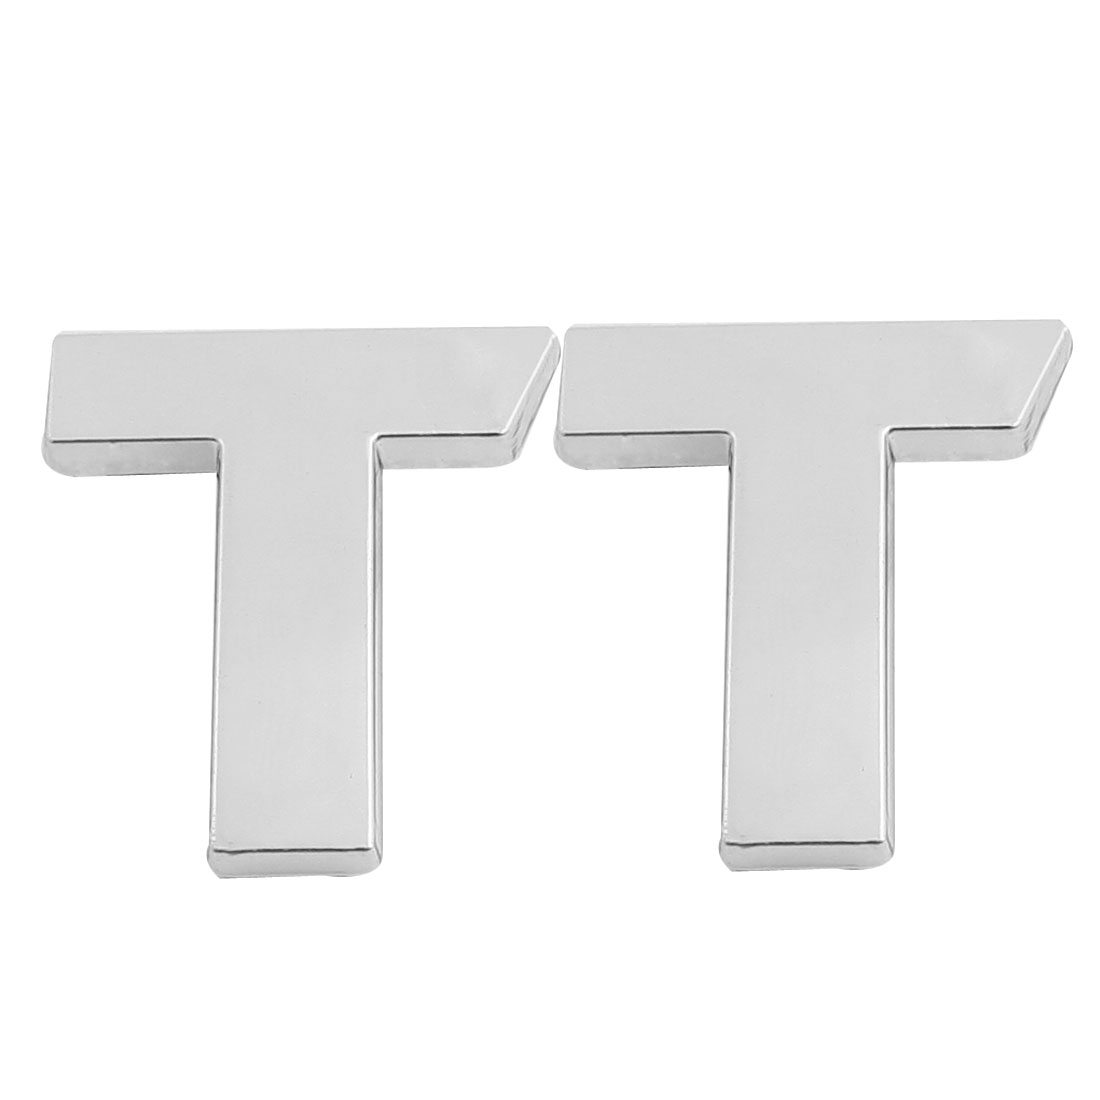 Car Front Hood Letter T 3D Emblem Badge Sticker Decal Silver Tone 2 Pcs